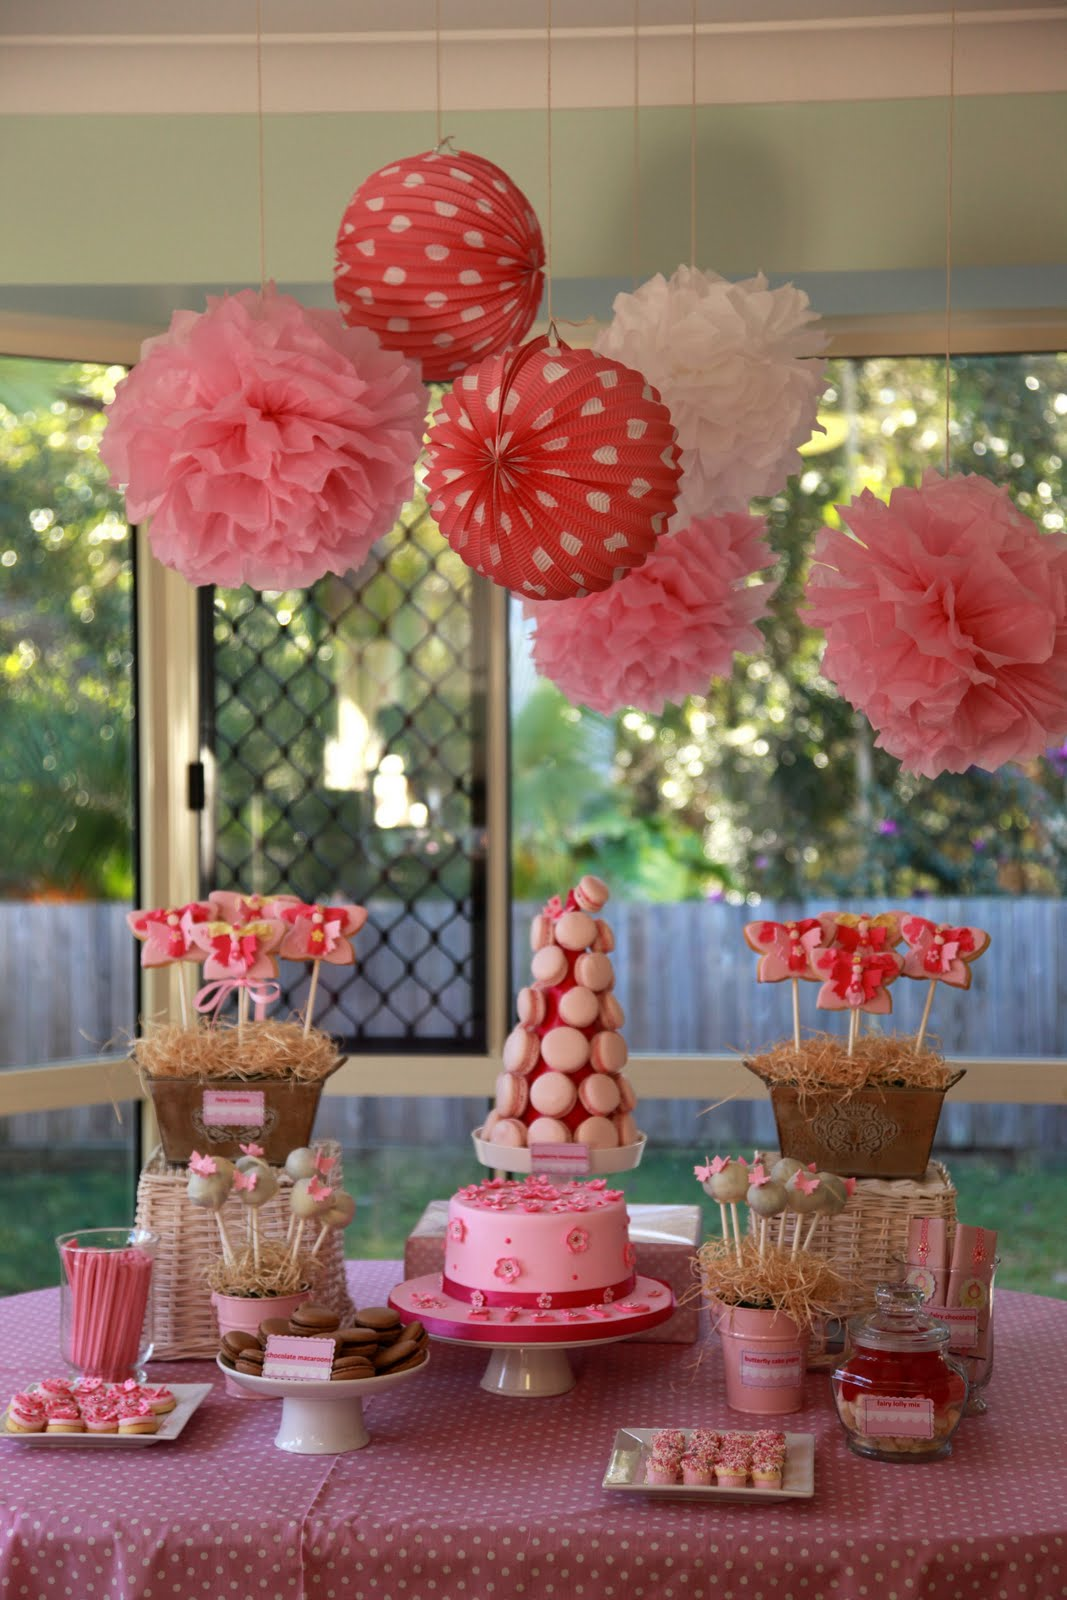 Lillis 6th Birthday - Fairy High Tea Party